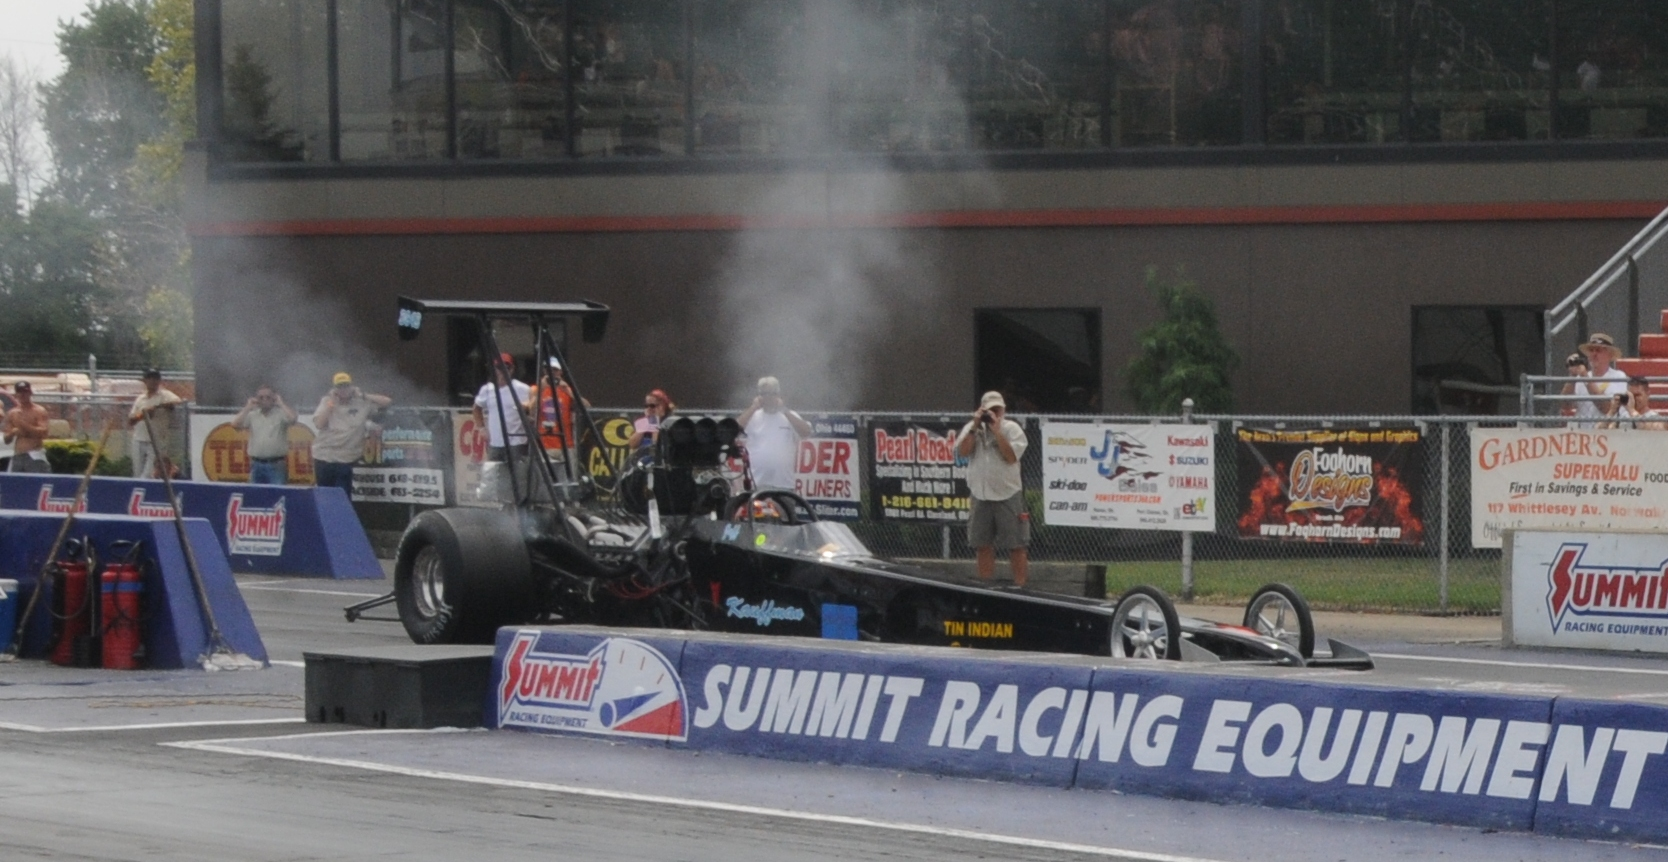 Jeff Kauffman blown rear engine dragster ready to launch at Norwalk 2011